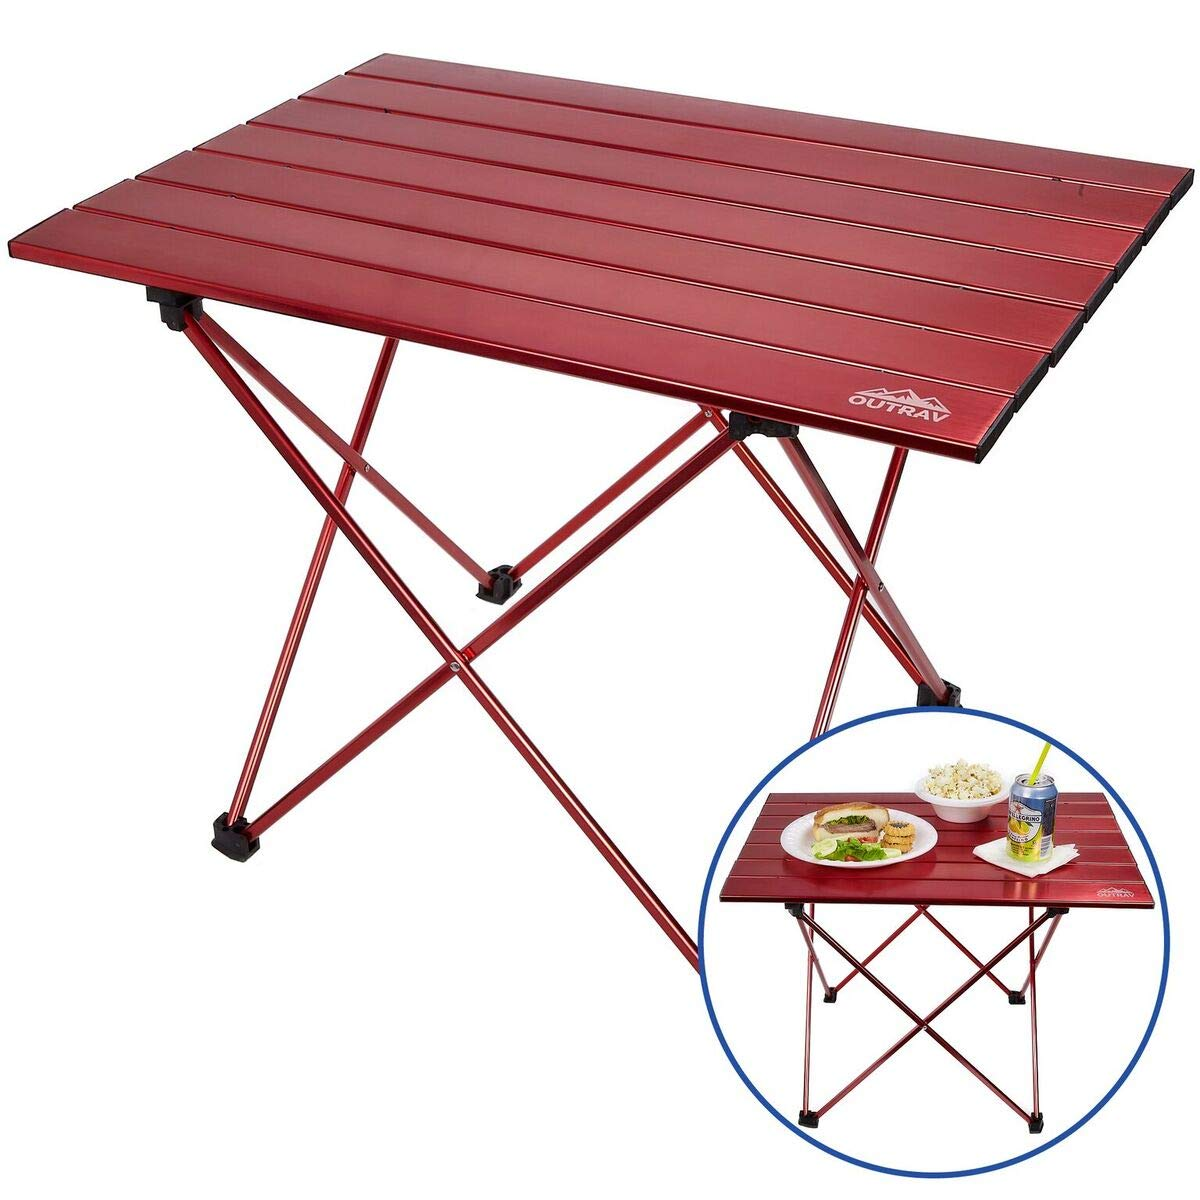 Portable Picnic and Camping Table - Collapsible Accordion Aluminum Frame, Roll Up Aluminum Table Top - Drawstring Carrying Case - Ultra Lightweight - by Outrav by Outrav